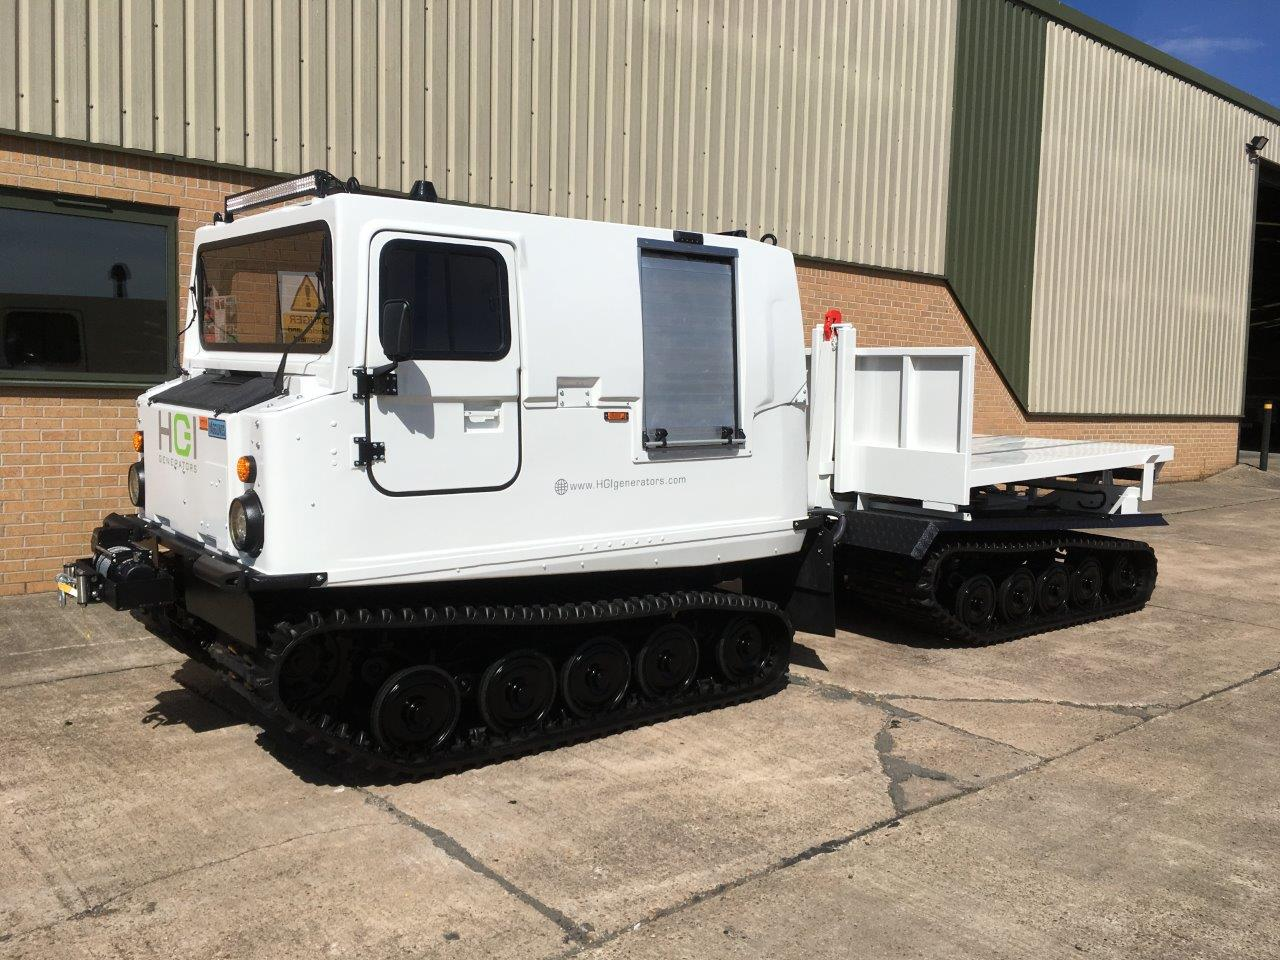 Hagglunds Bv206 DROPS Body Unit | Military Land Rovers 90, 110,130, Range Rovers, Mercedes for Sale